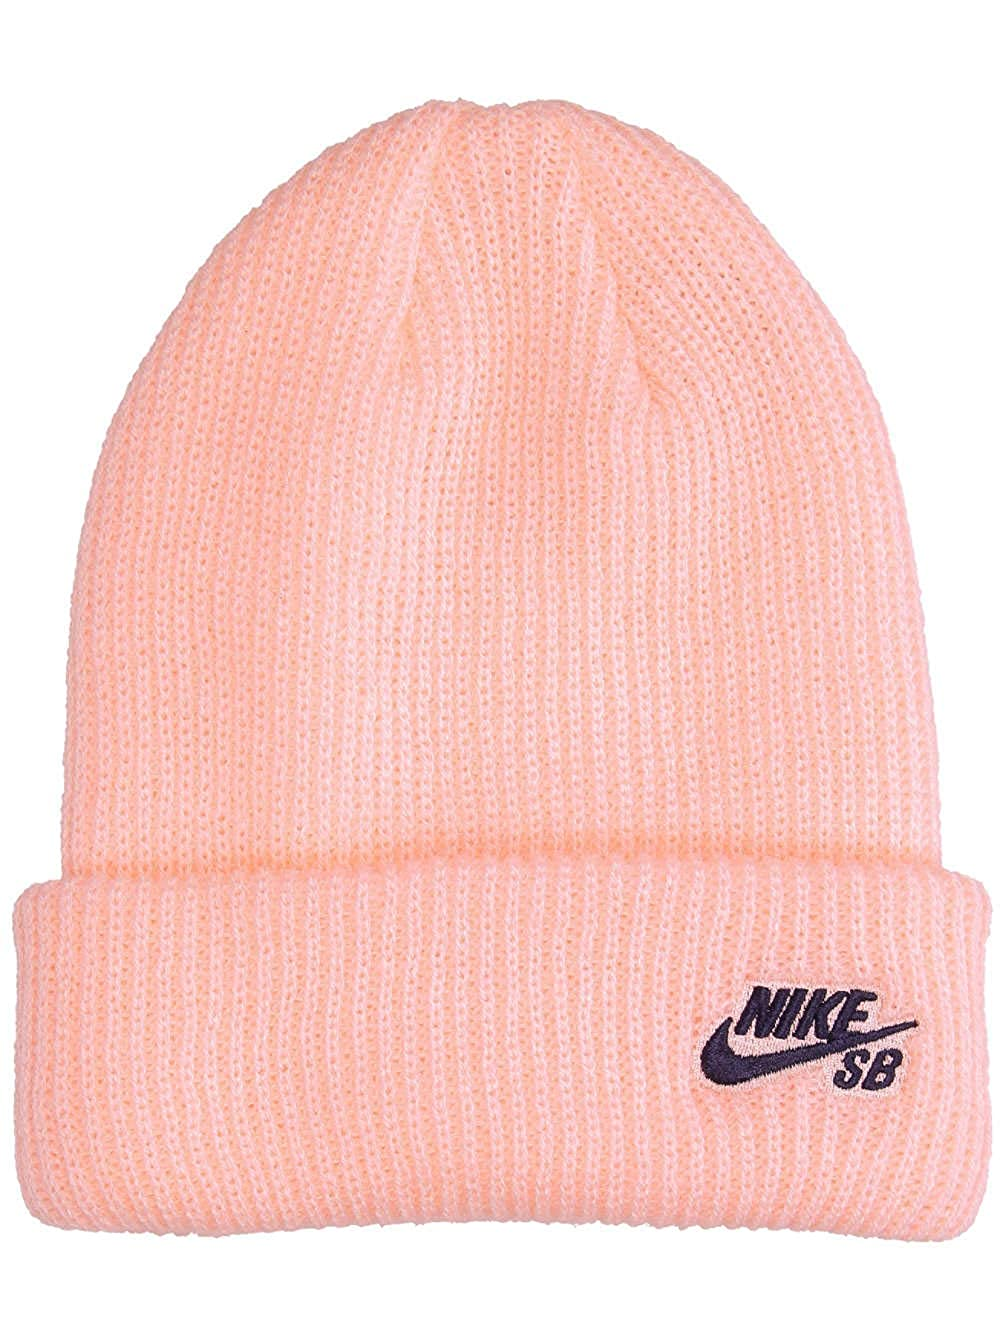 wholesale dealer cd2cd dc383 Amazon.com  NIKE Unisex Fisherman Beanie  Sports   Outdoors